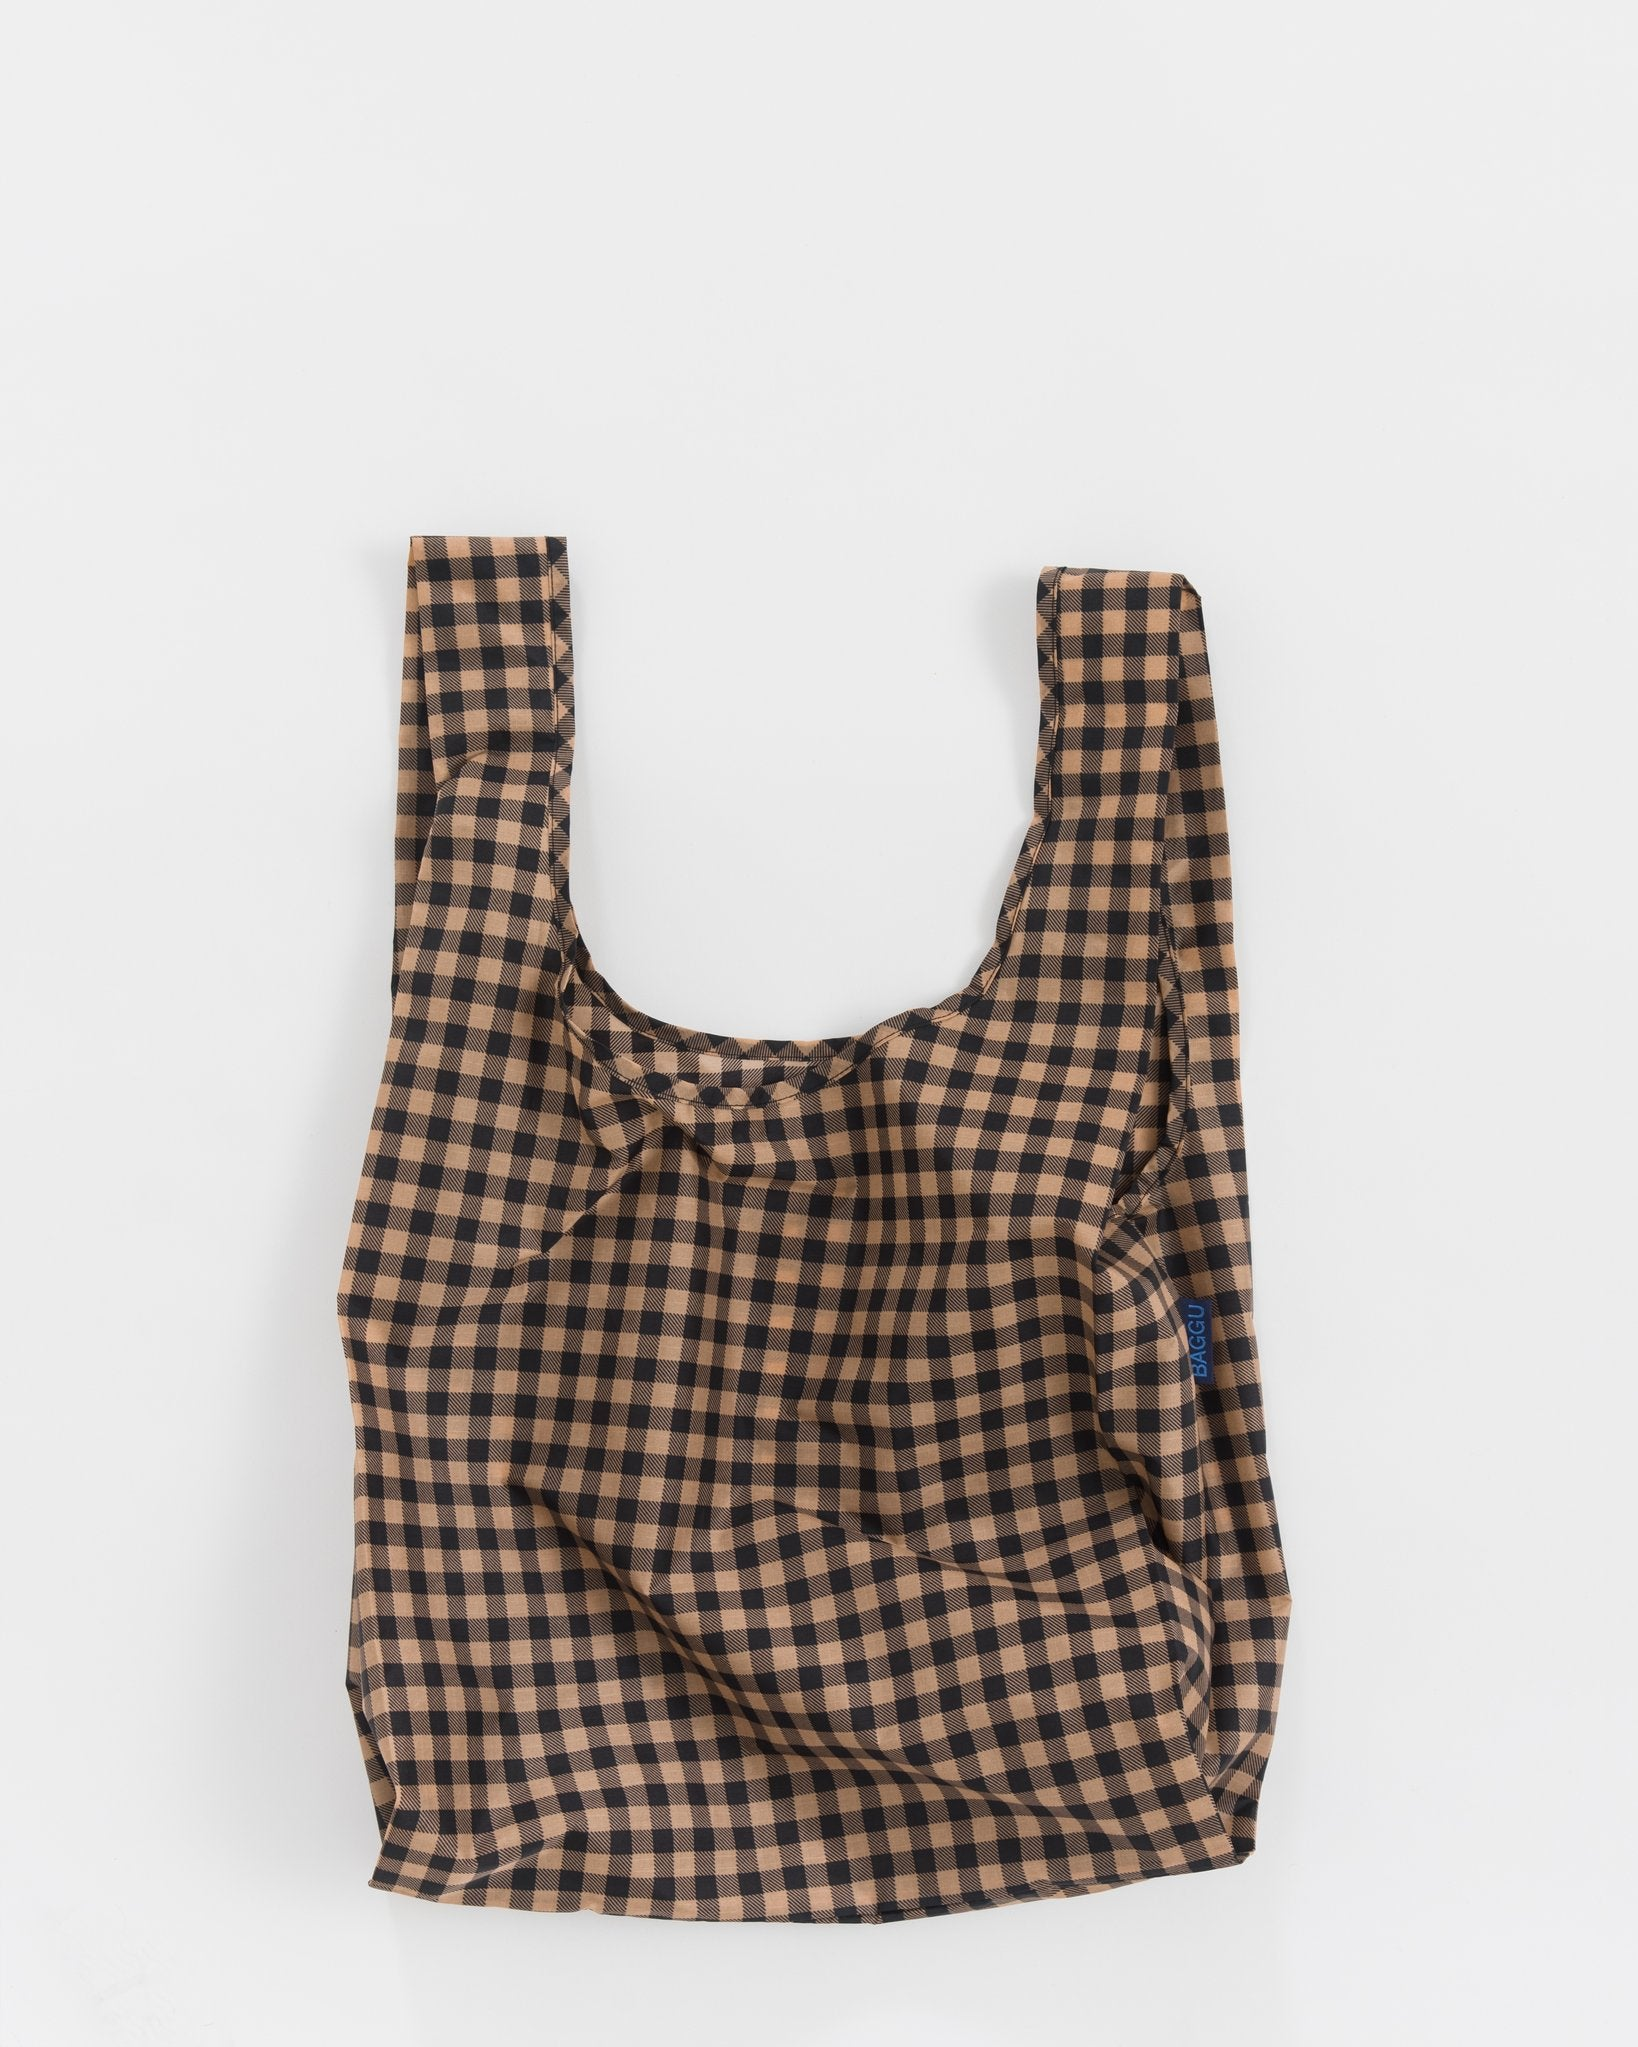 Copper Gingham Tote